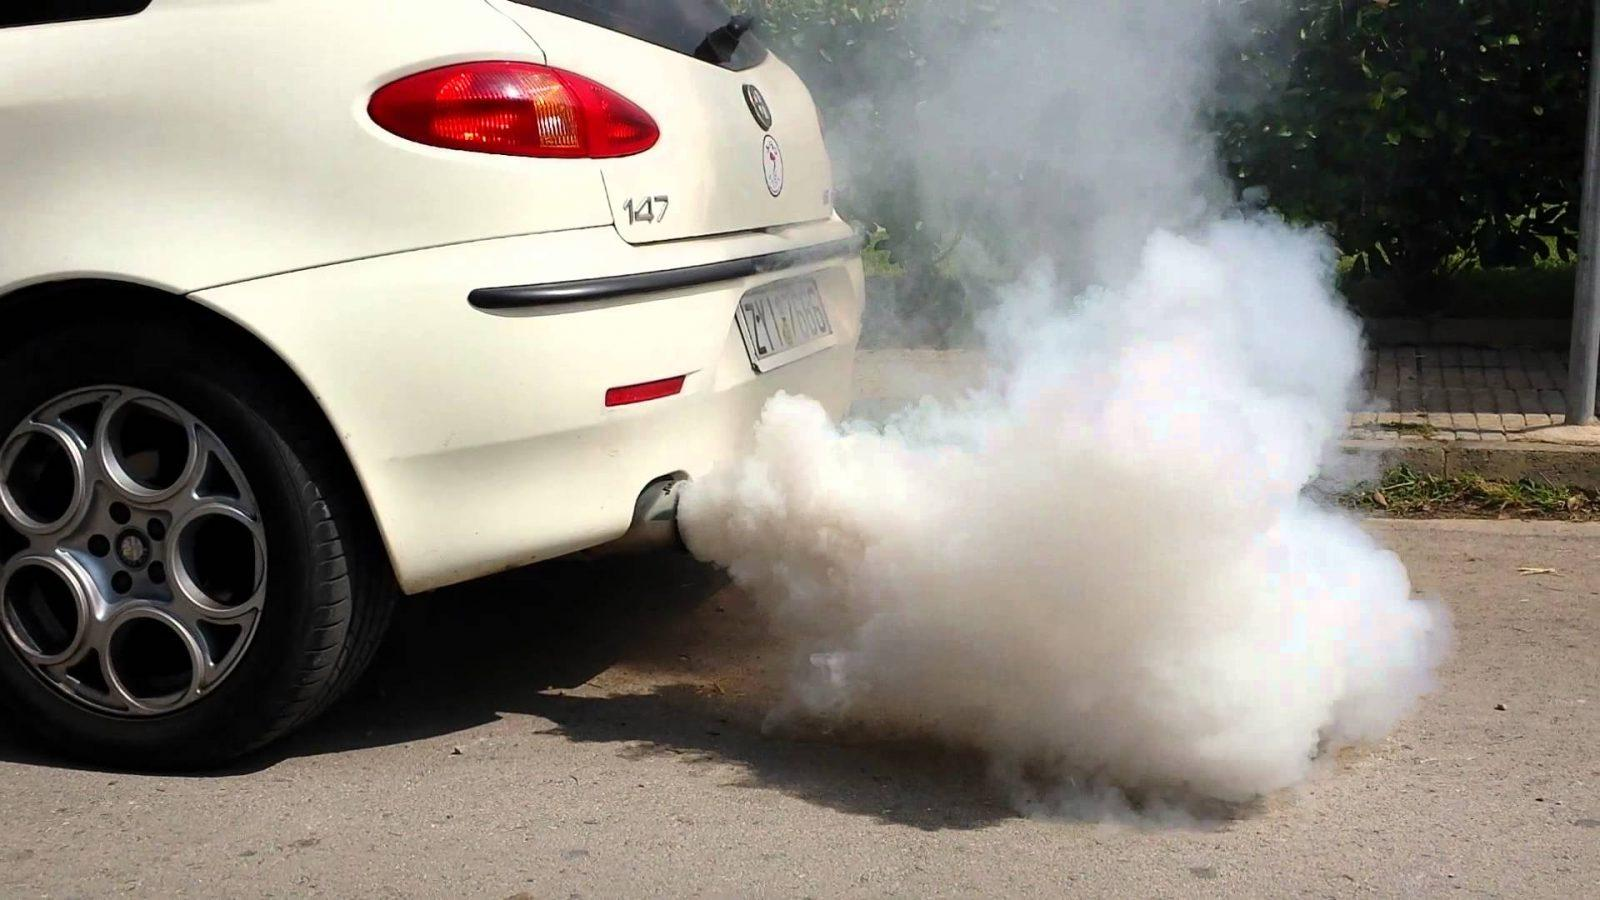 8 Reasons Your Car Is Making Grinding Noise When Braking From Fuse Box White Smoke Exhaust Main Causes And How To Fix